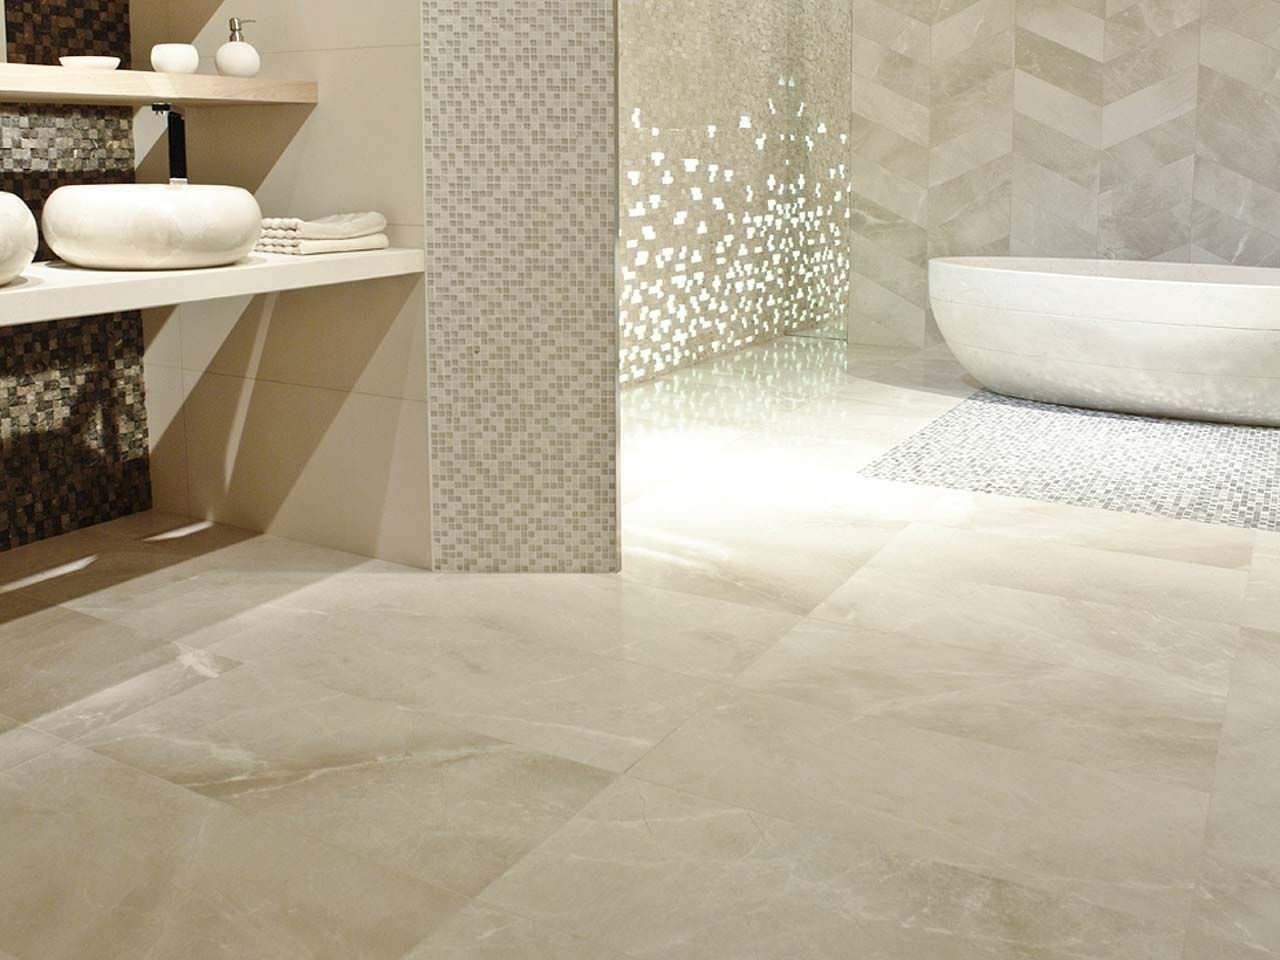 How to clean marble flooring like a pro home maintenance bathroom interior bathroom polished marble tile with curve bathtub and bathroom shelf elegant pictures of marble flooring ideas wooden cabinet towel dailygadgetfo Image collections